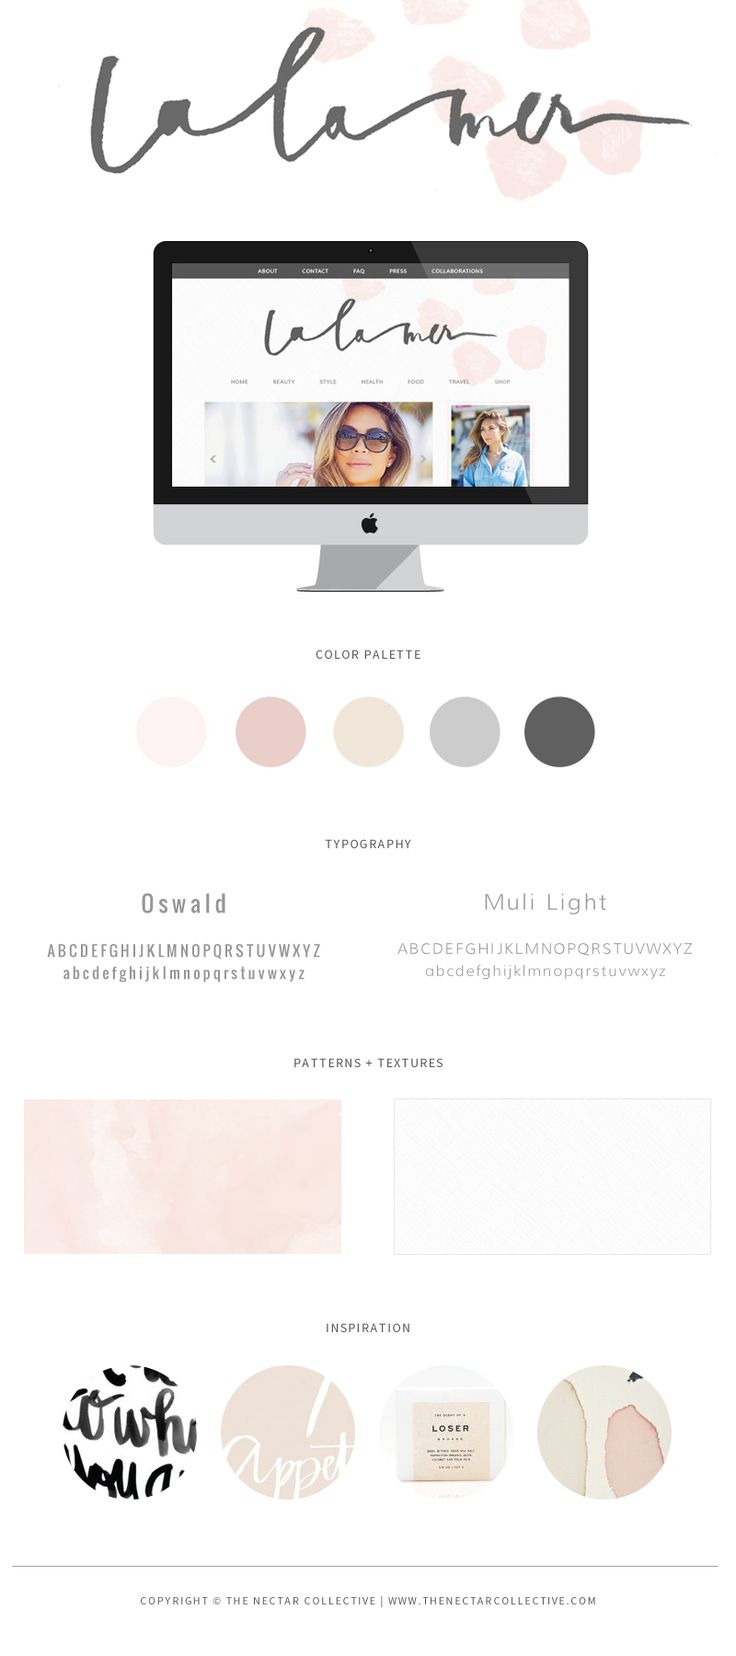 La La Mer Branding + Blog Design - The Nectar Collective